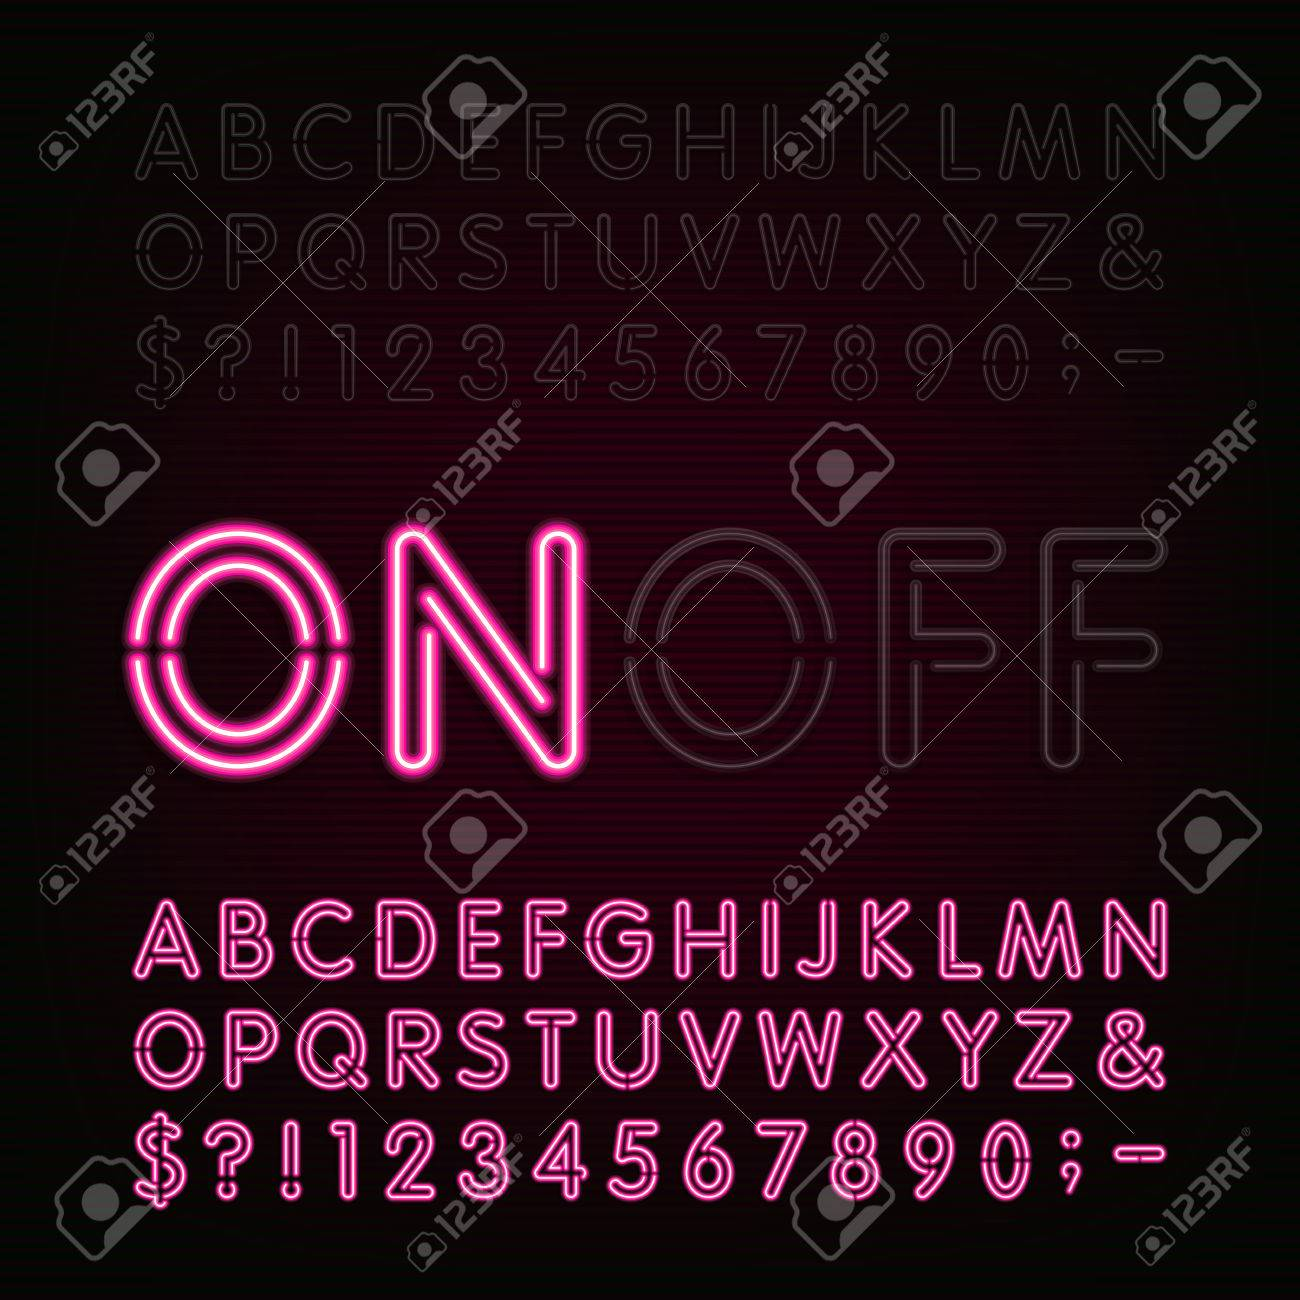 Neon Light Alphabet Font. Two different styles. Lights on or off. Type letters, numbers and symbols. Red neon tube letters on a dark background. typeface for animation, labels, titles, posters etc. - 53799470